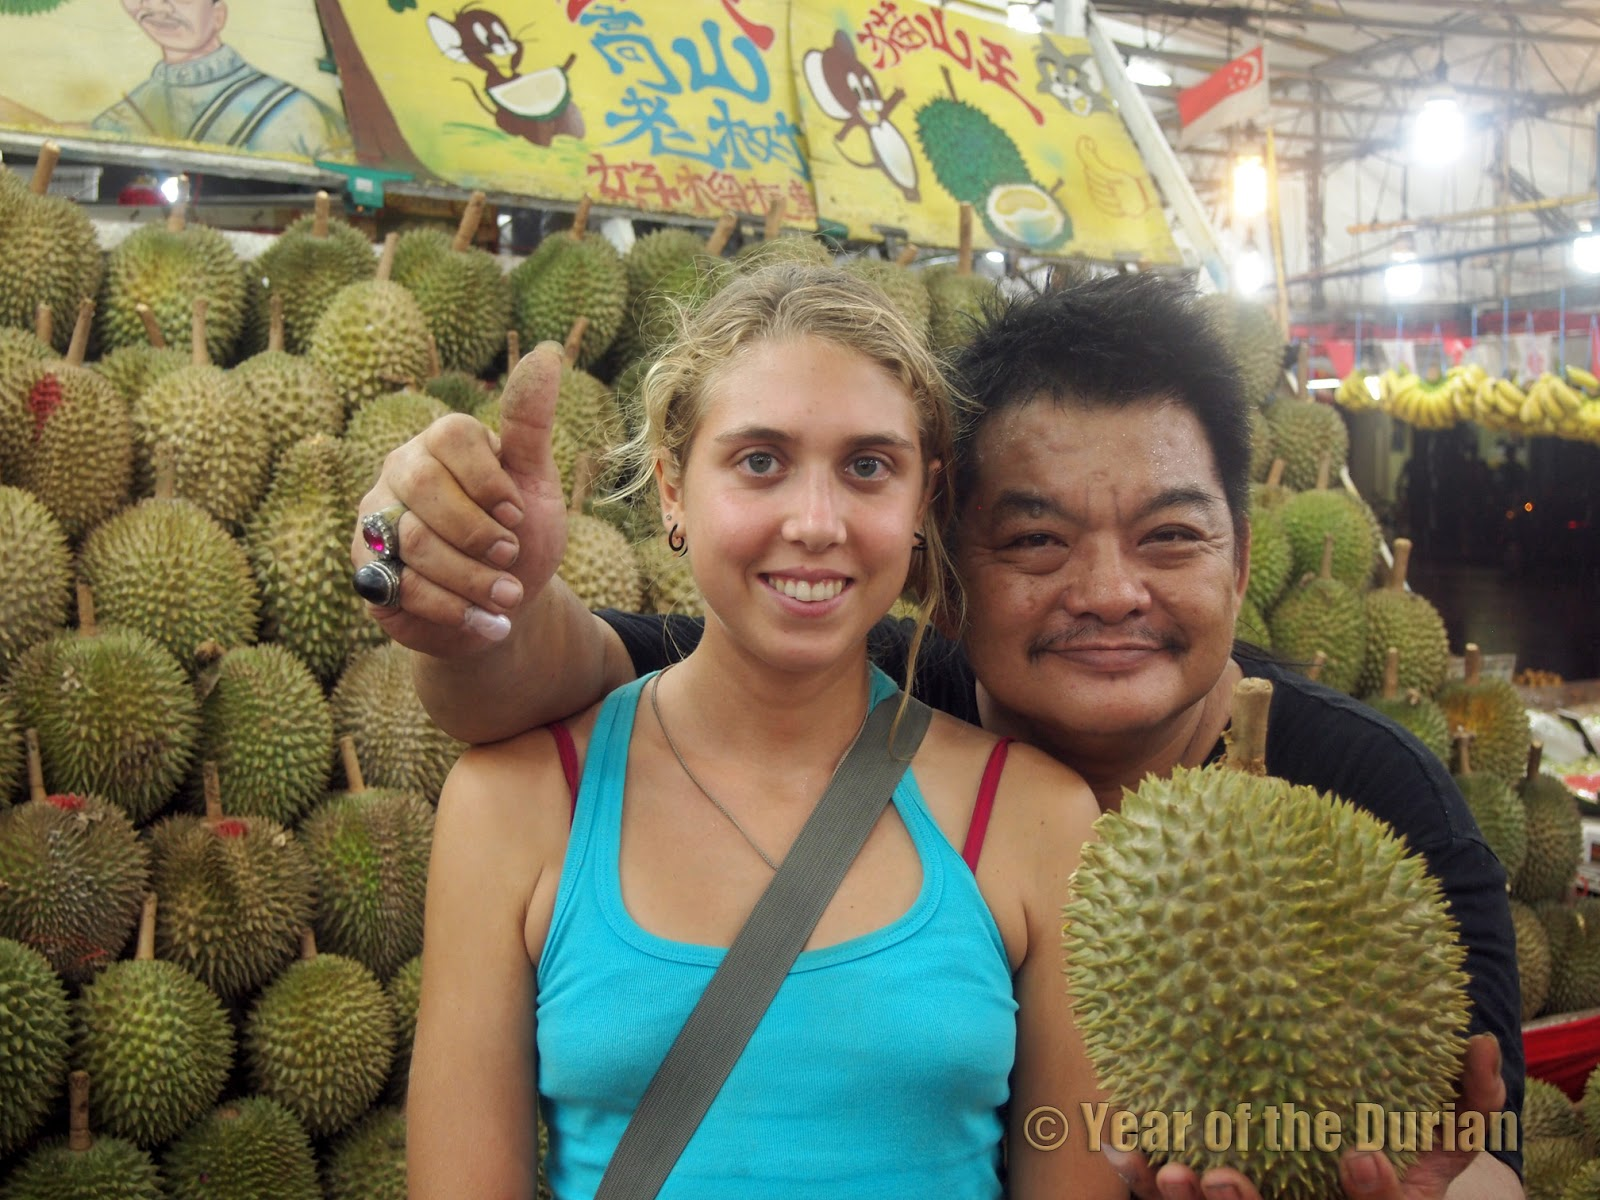 10 tricksy ways durian sellers cheat durian lovers. Black Bedroom Furniture Sets. Home Design Ideas